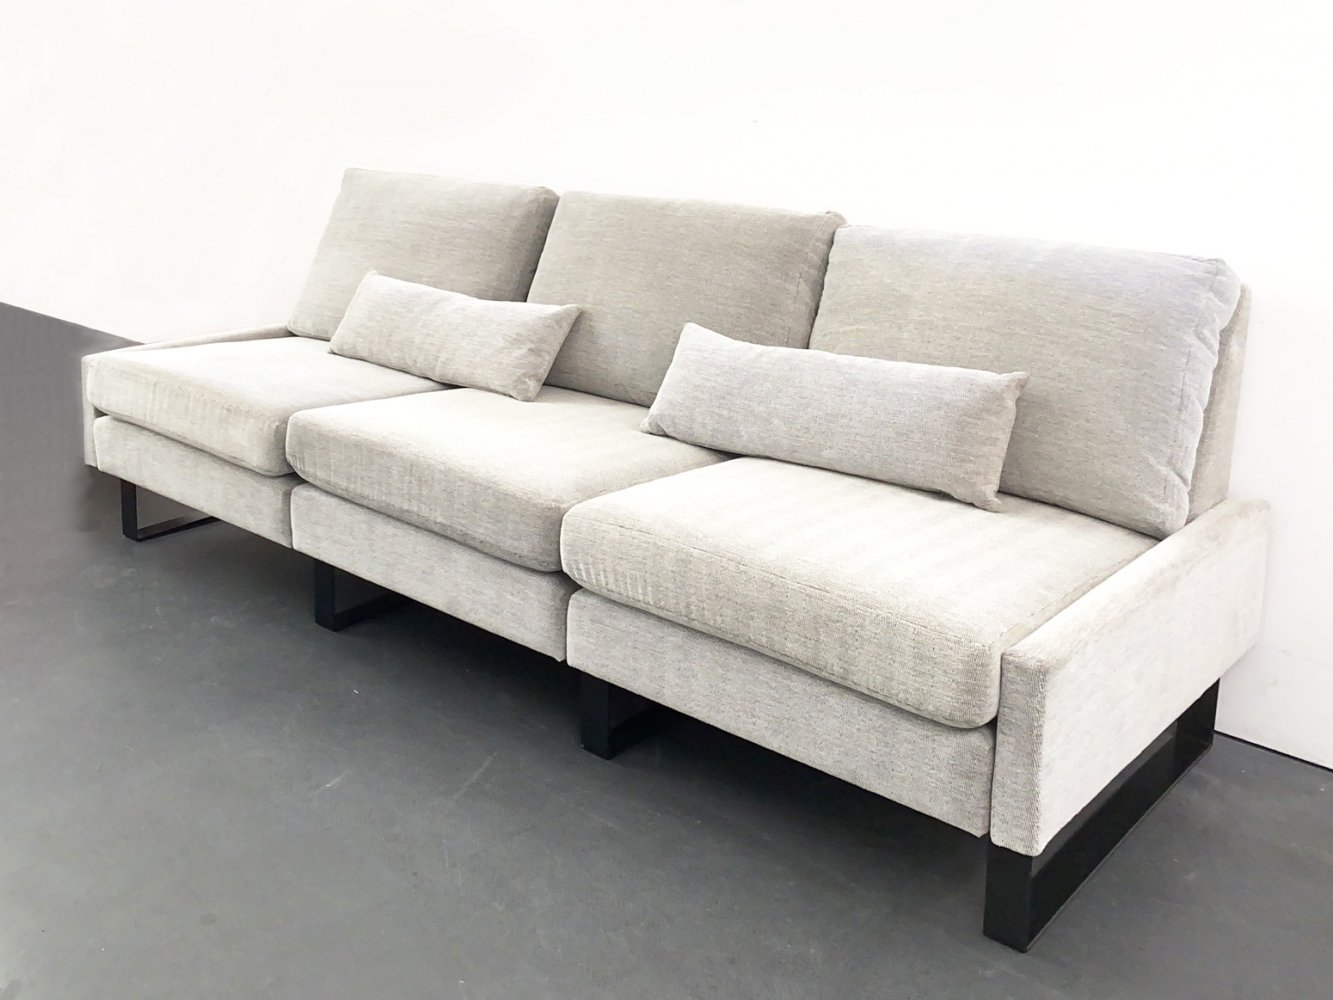 Mid-Century Conseta 3-Seater Sofa by FW Möller for Cor, Germany 1960s